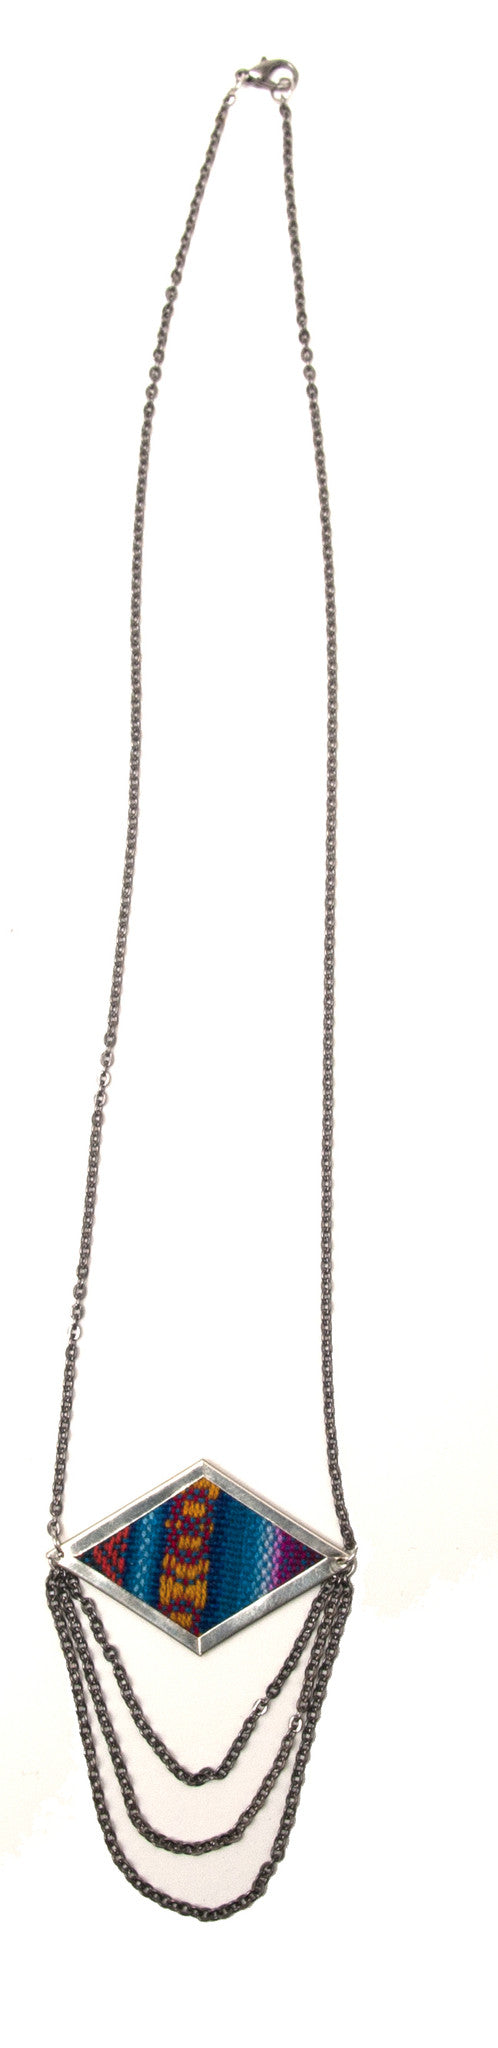 Ethical Rivera Necklace Greenola